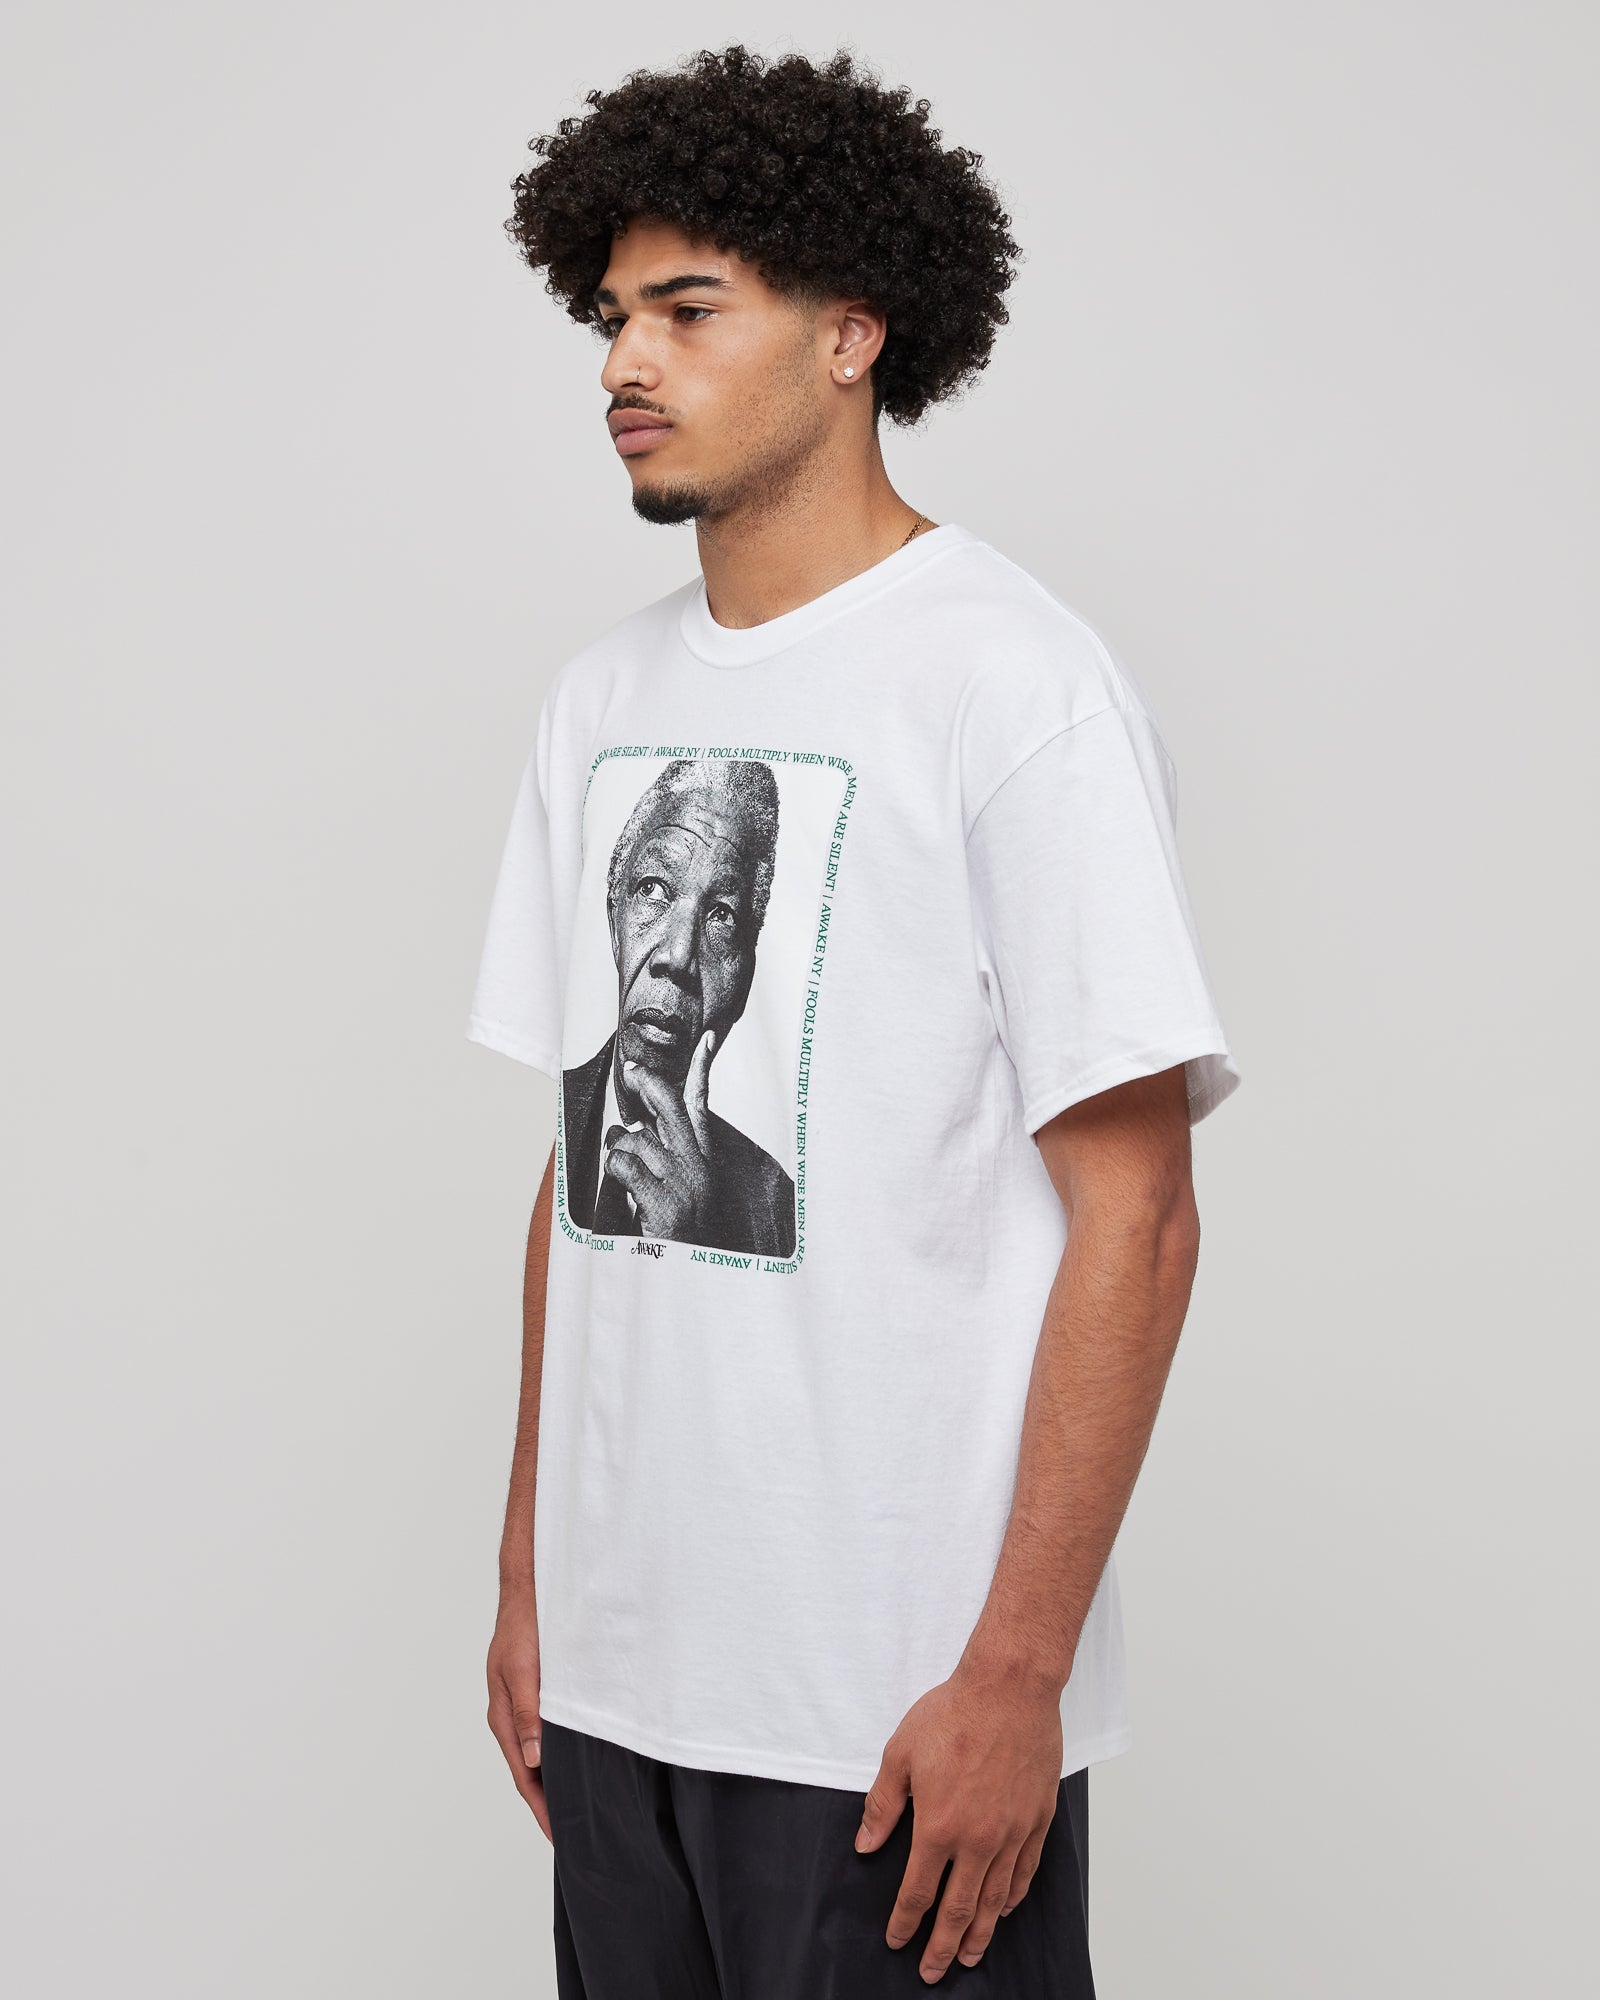 Mandela T-Shirt in White